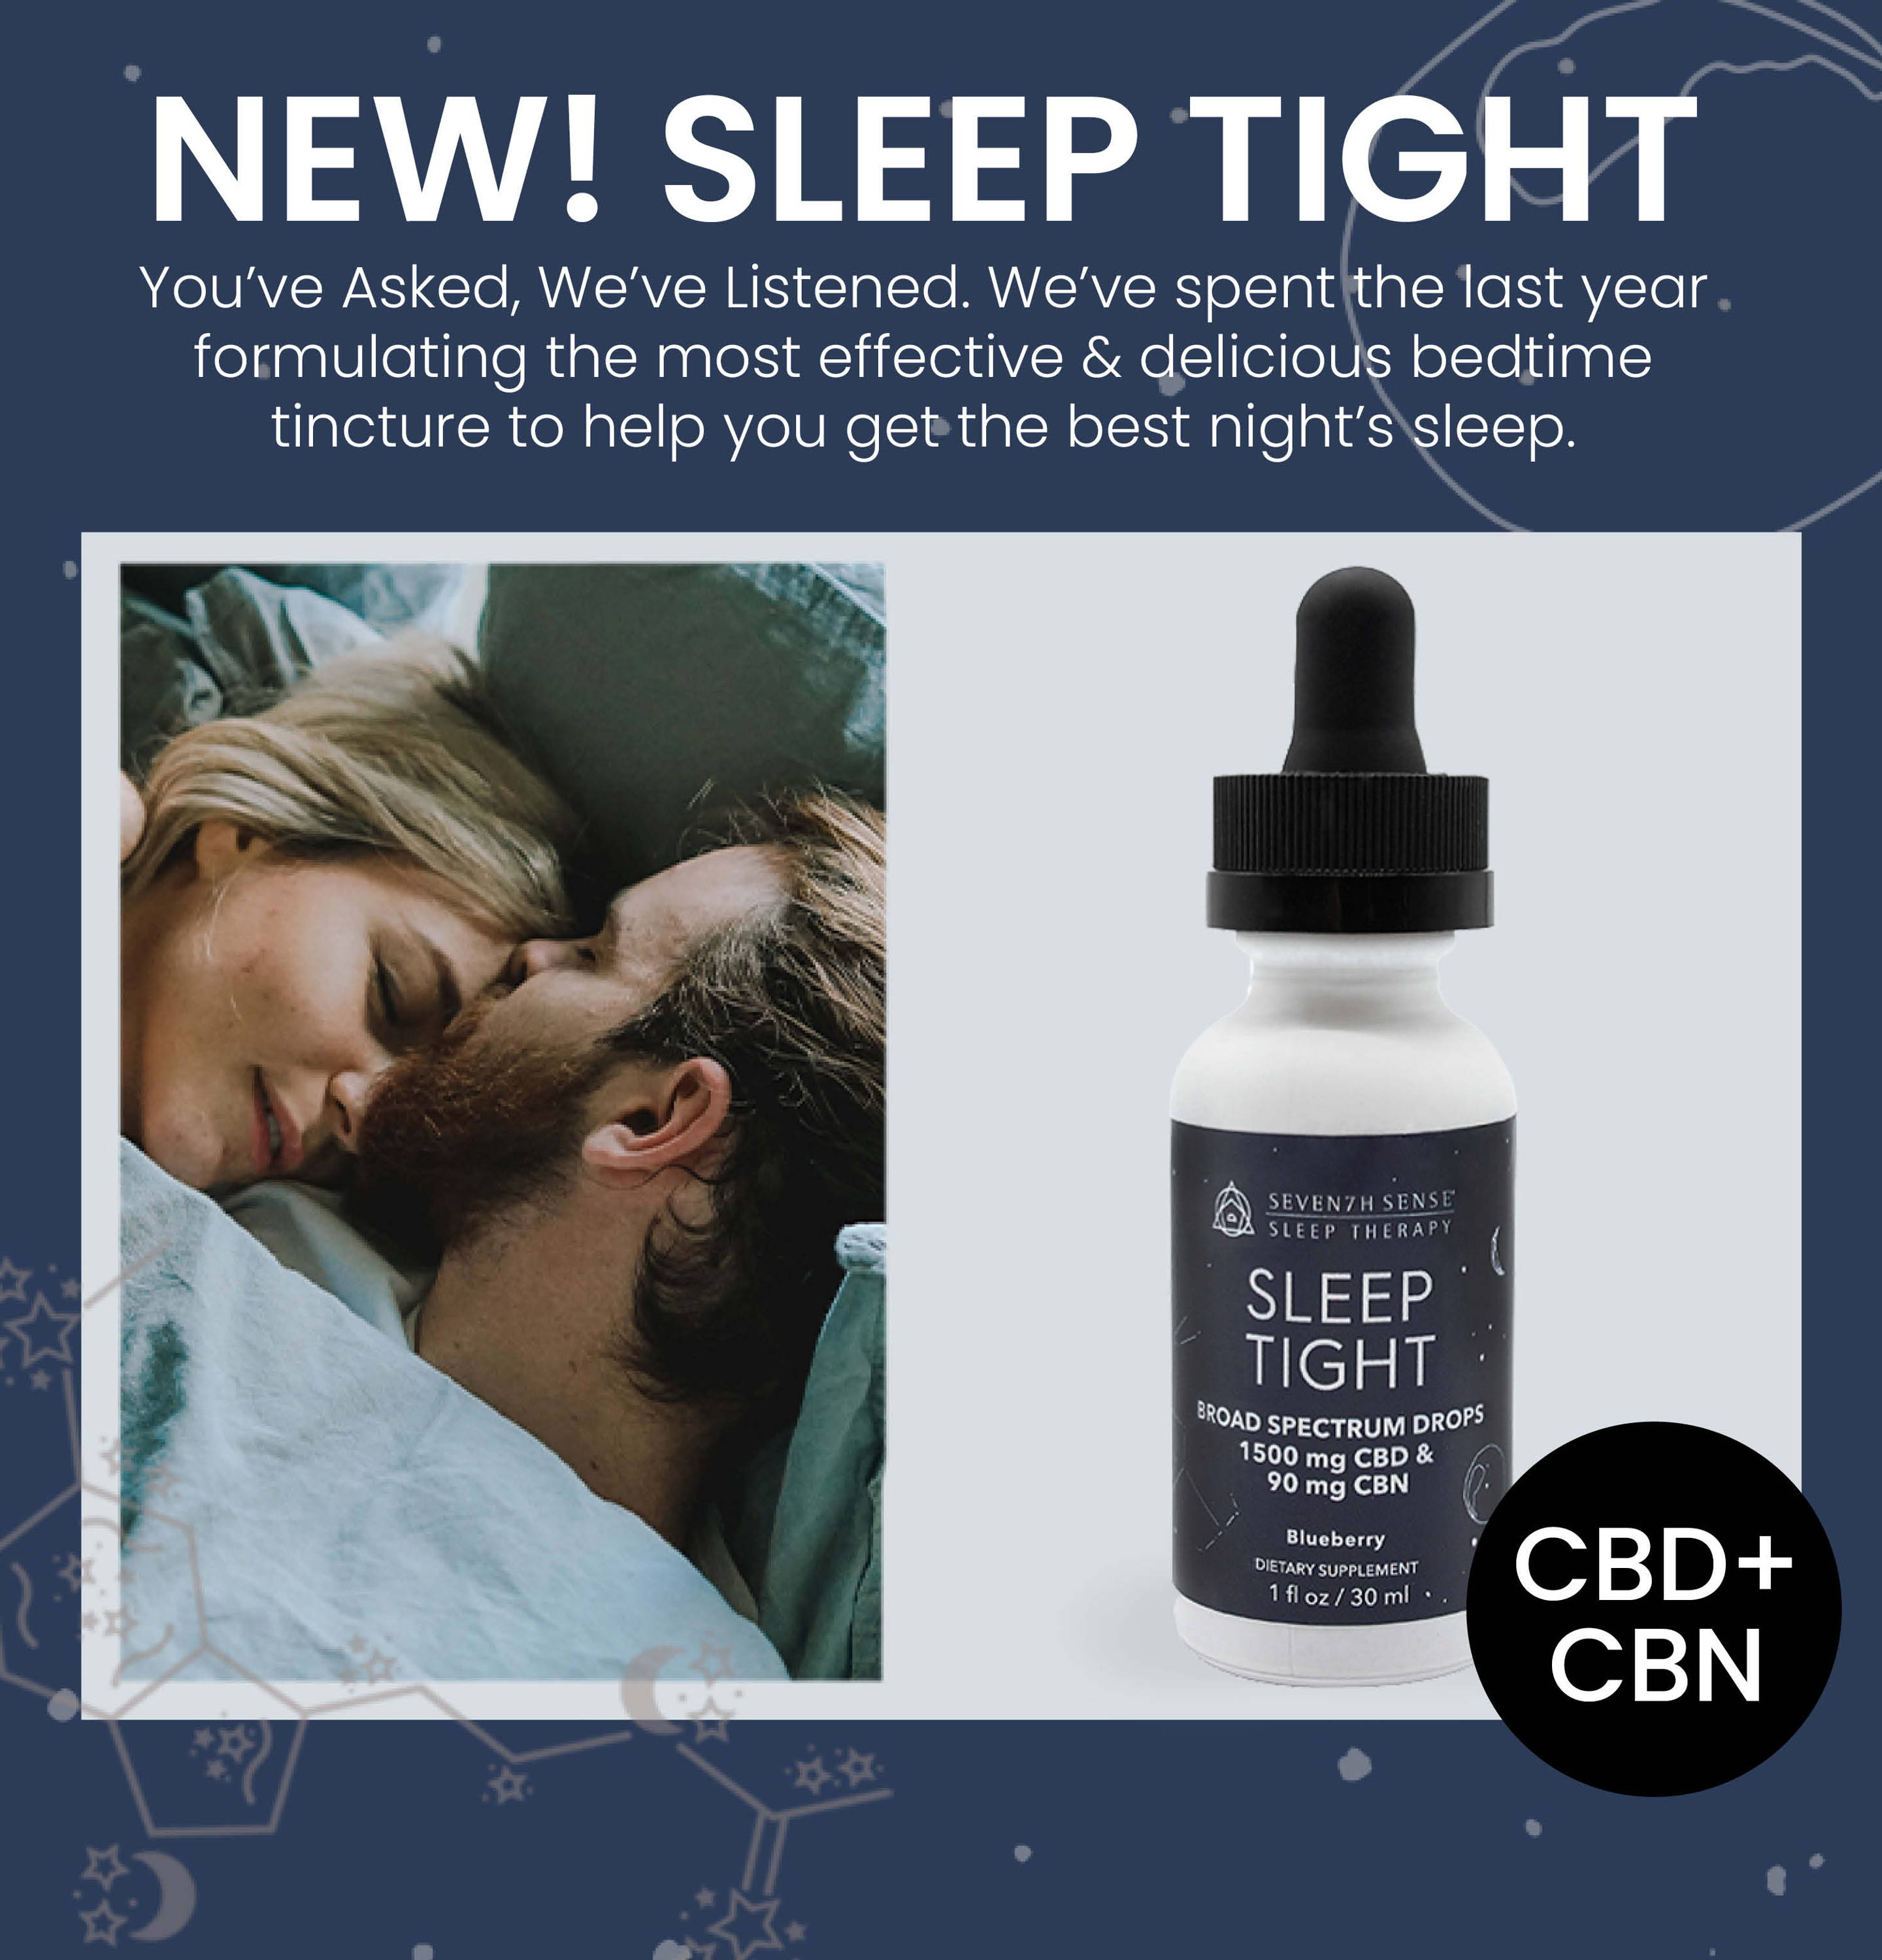 NEW! Sleep Tight. You've Asked, We've Listened. We've spent the last year  formulating the most effective & delicious bedtime  tincture to help you get the best night's sleep.